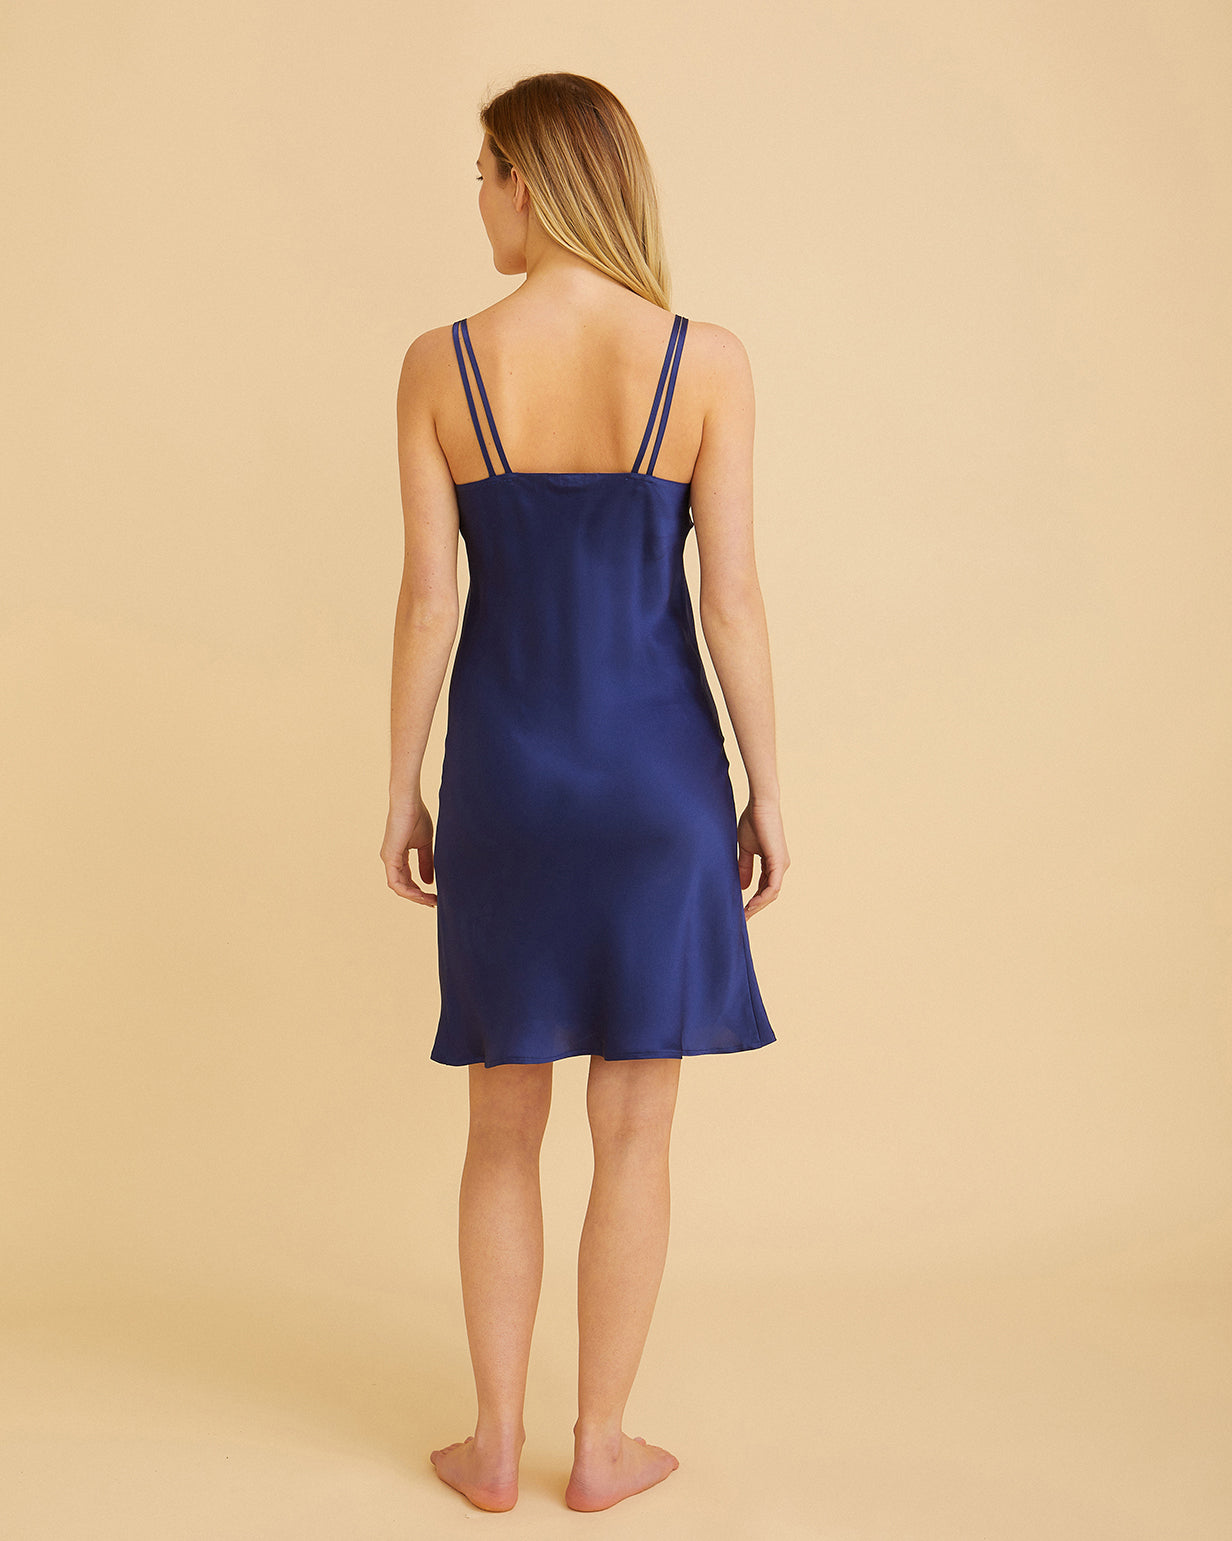 Women's Luxury Midnight Silk Short Nightdress | Bonsoir of London